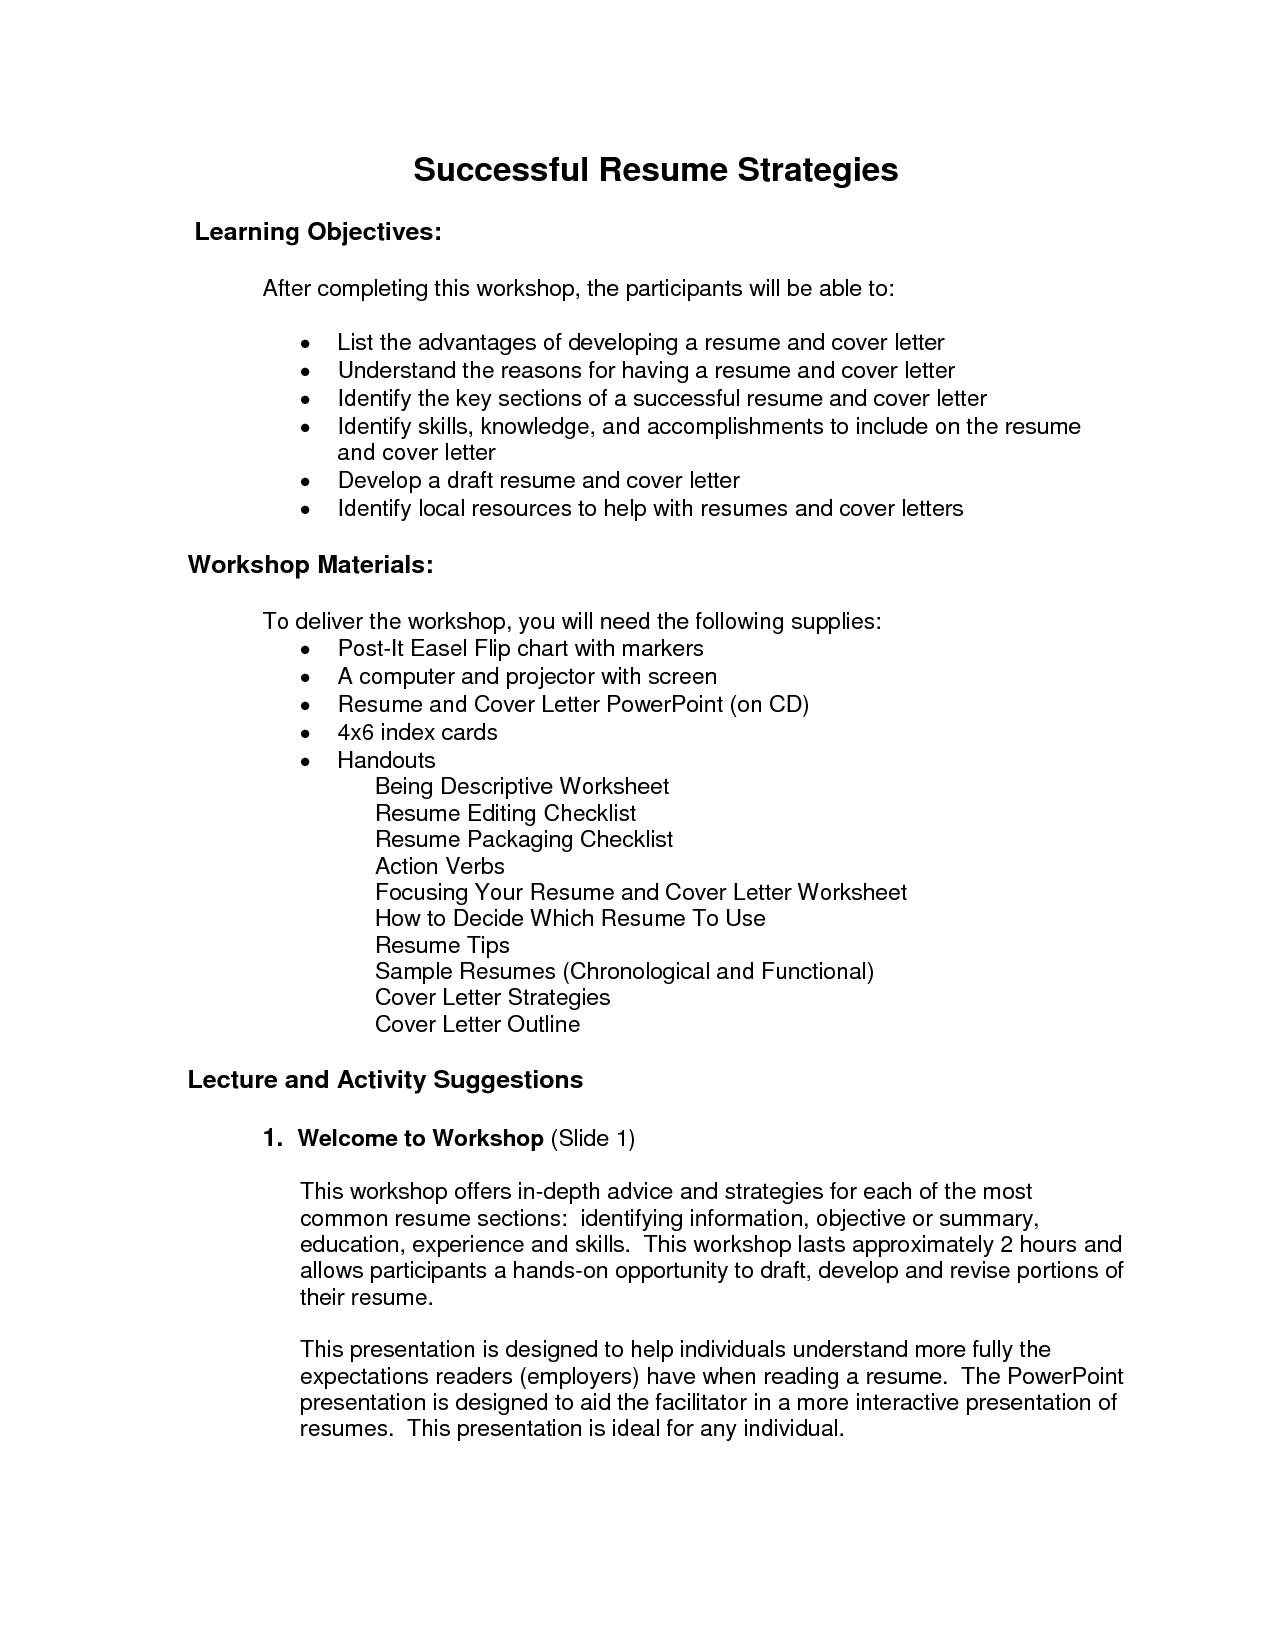 fashion stylist resume objective httpwwwresumecareerinfofashion - Help With Resume Objective